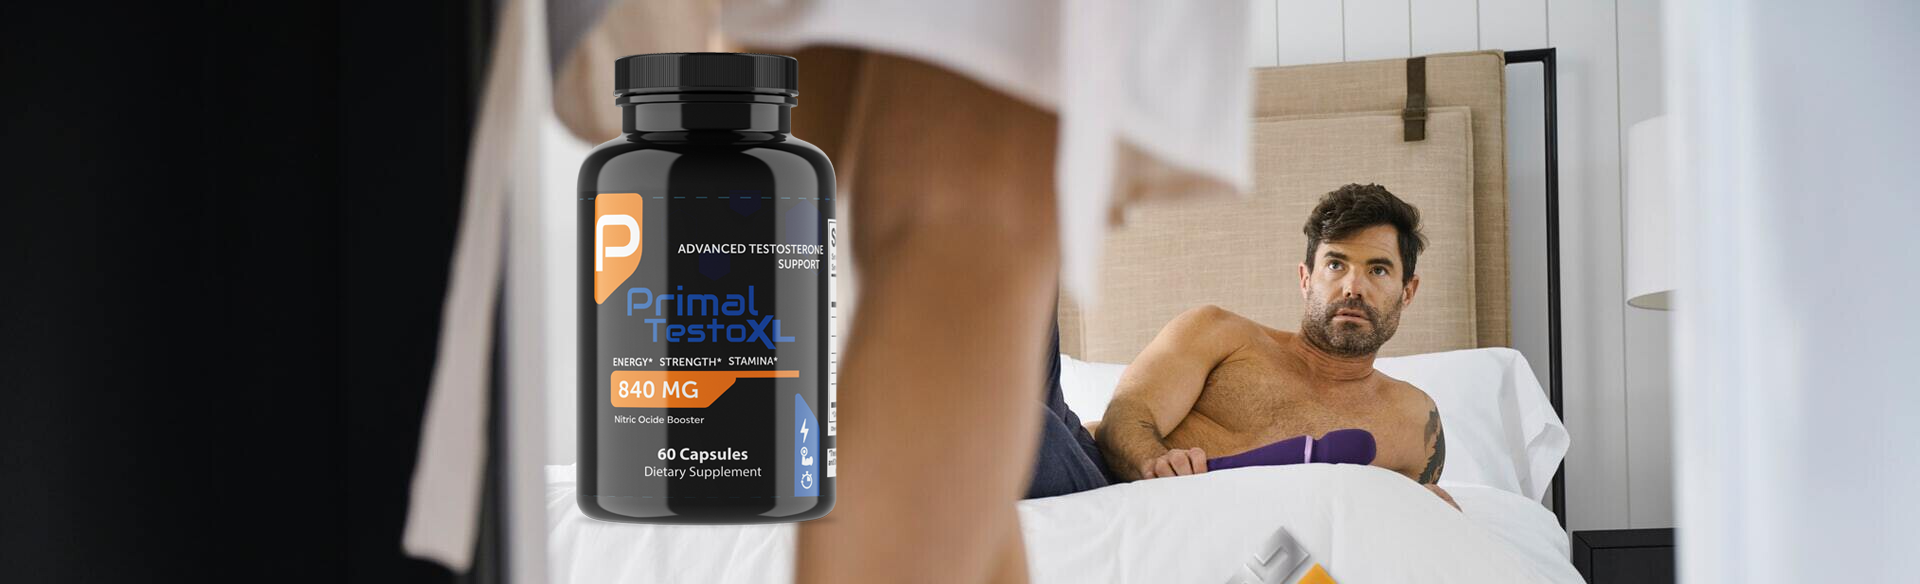 Primal TestoXL : (2021) Obvious Scam or Safe Sexual Performance?